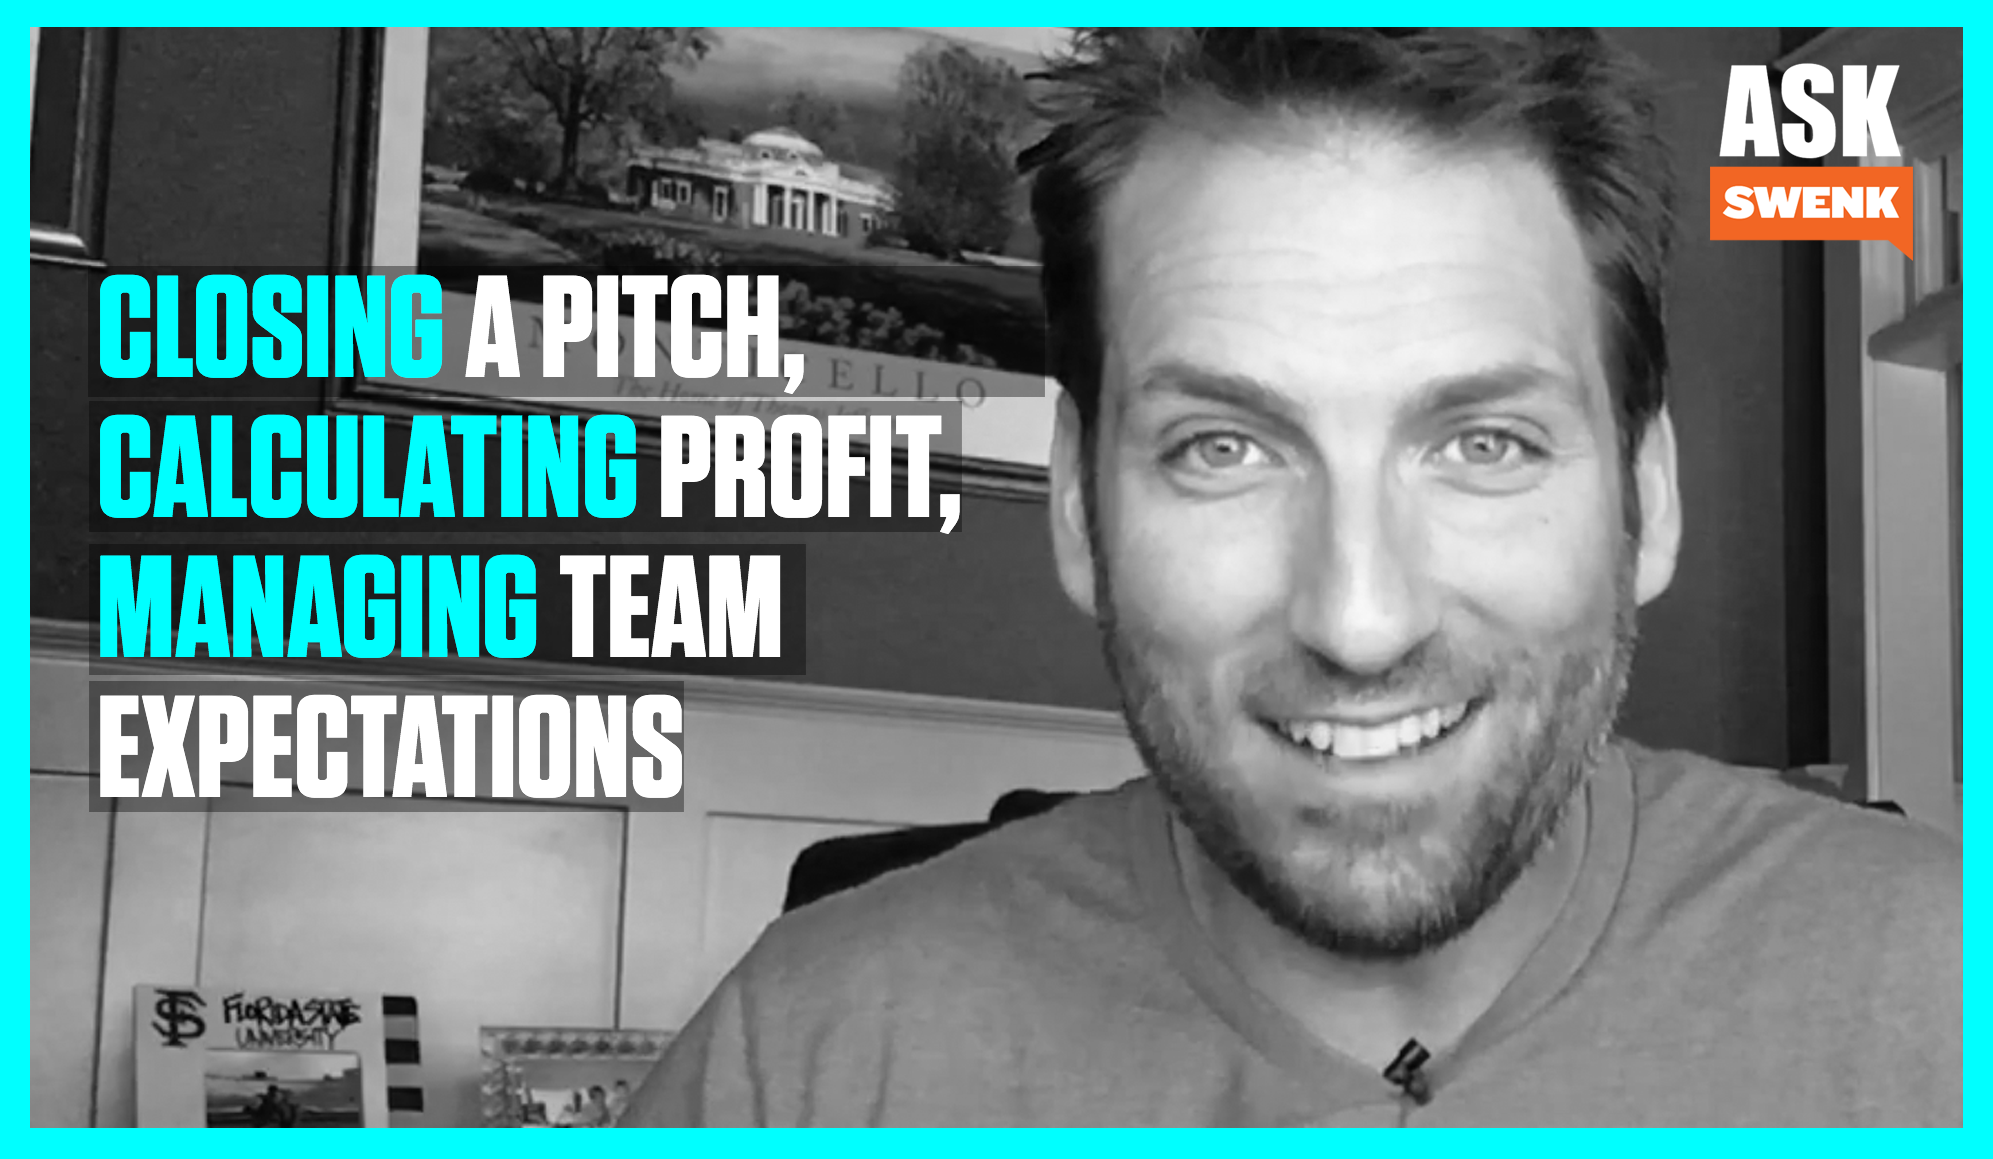 Team Priorities, Closing a Pitch & Calculating Profit #AskSwenk Episode 38